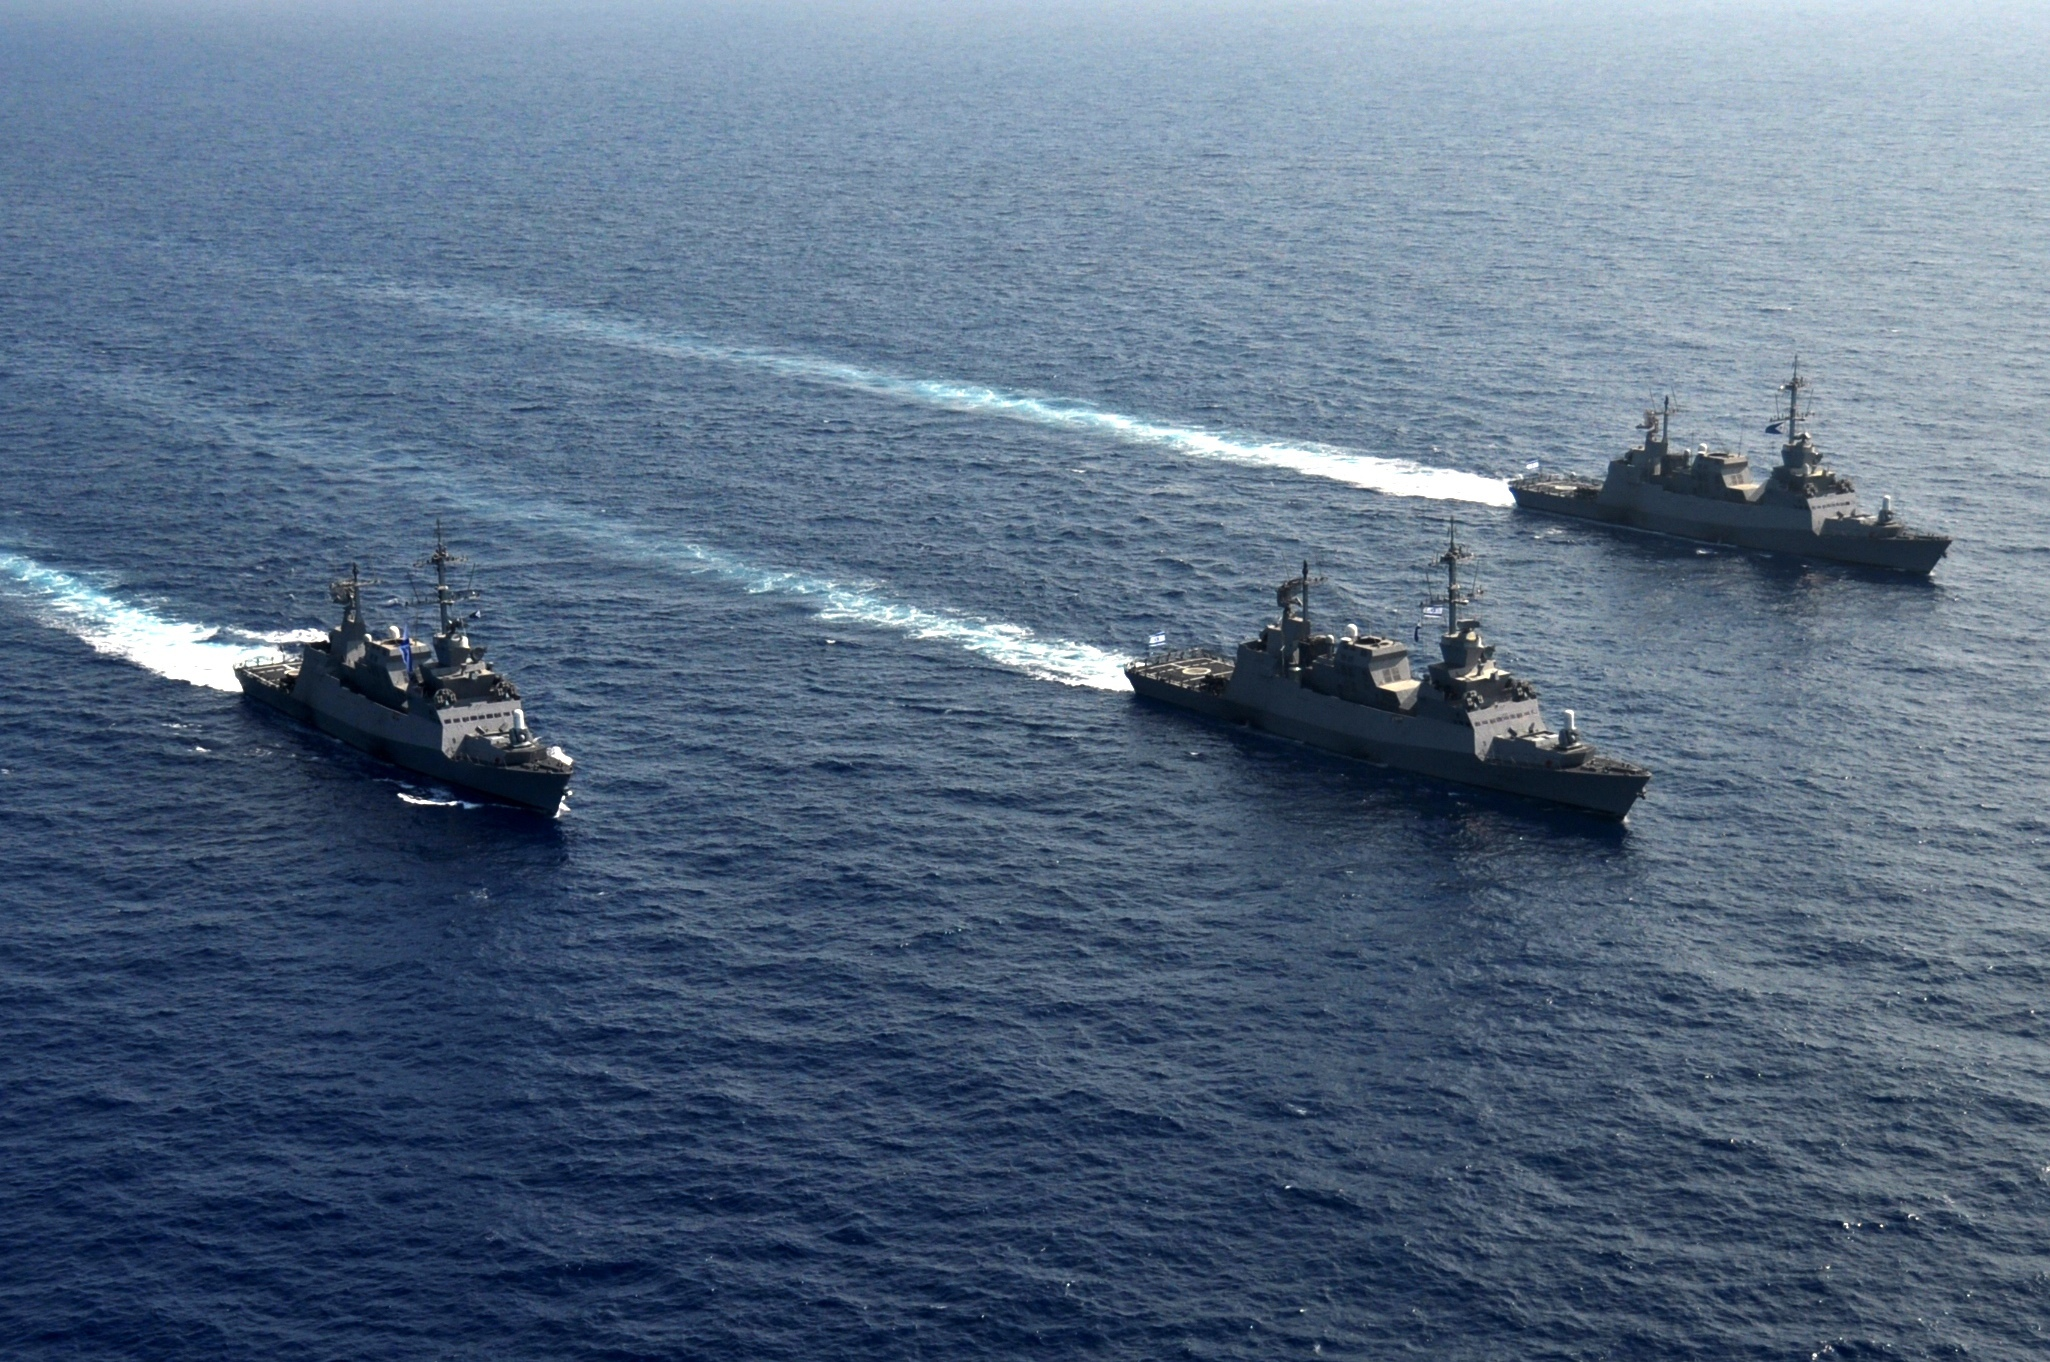 Israel attacks nearly ten Iranian ships in a year and a half